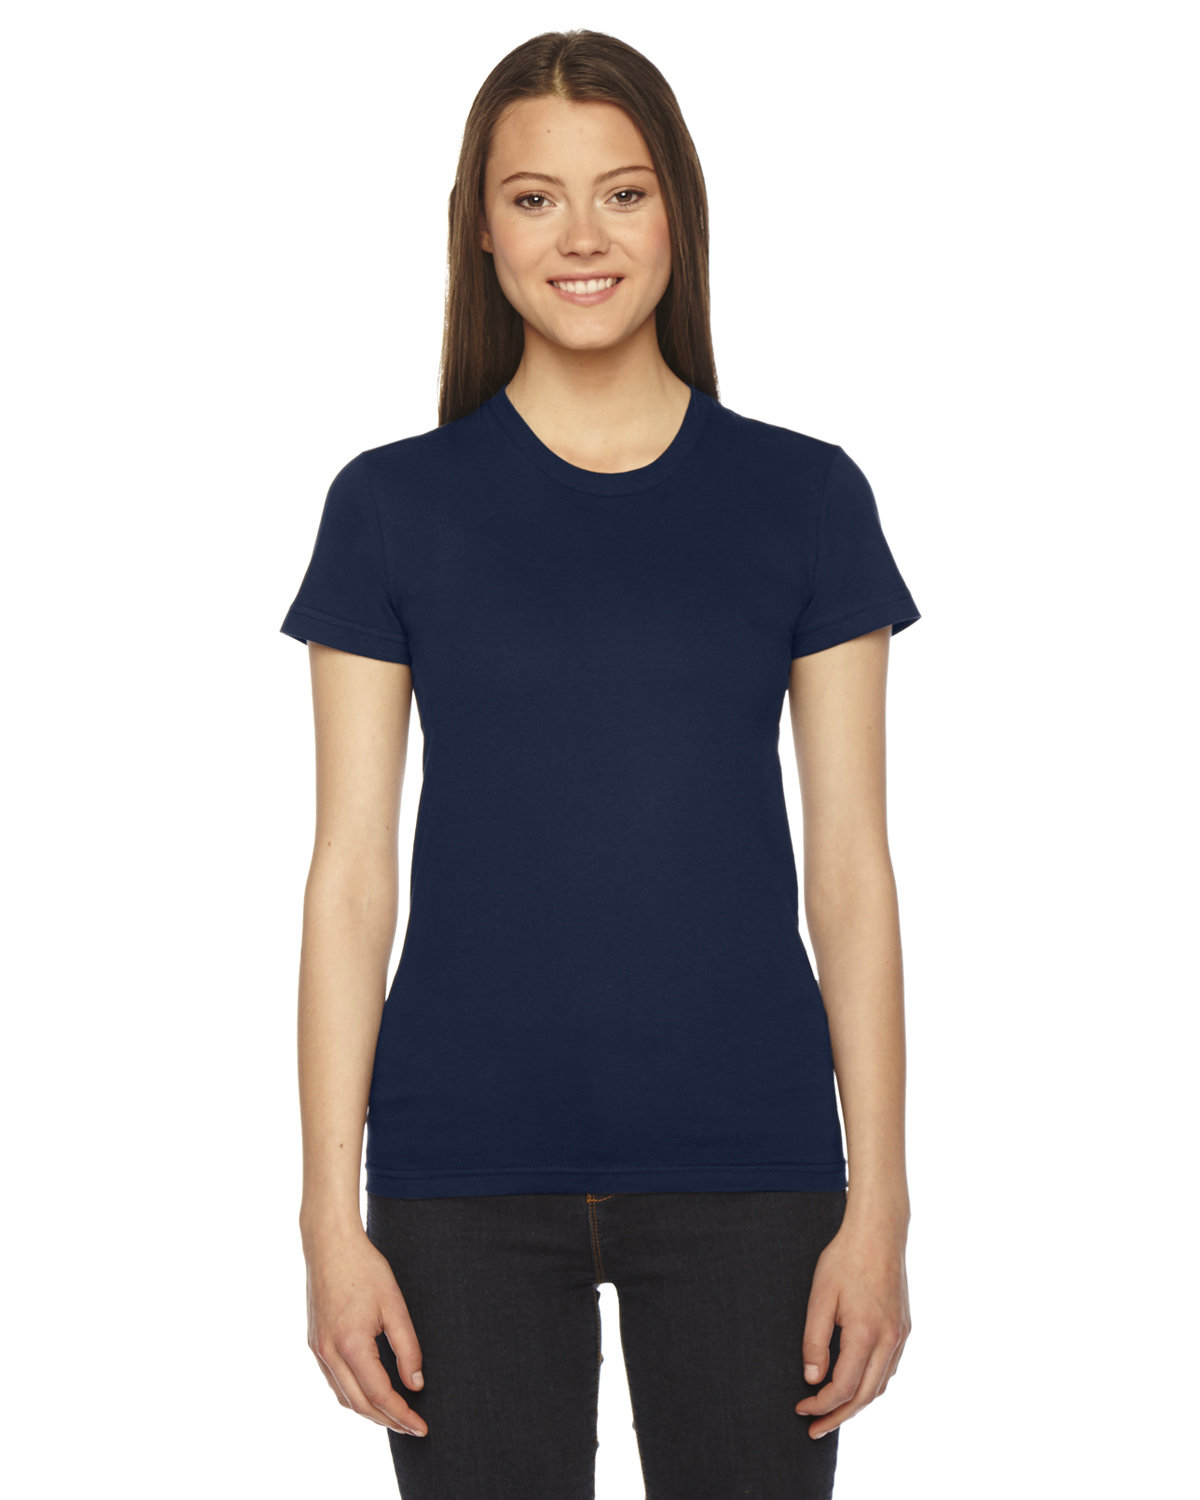 American Apparel Ladies' Fine Jersey Short-Sleeve T-Shirt NAVY